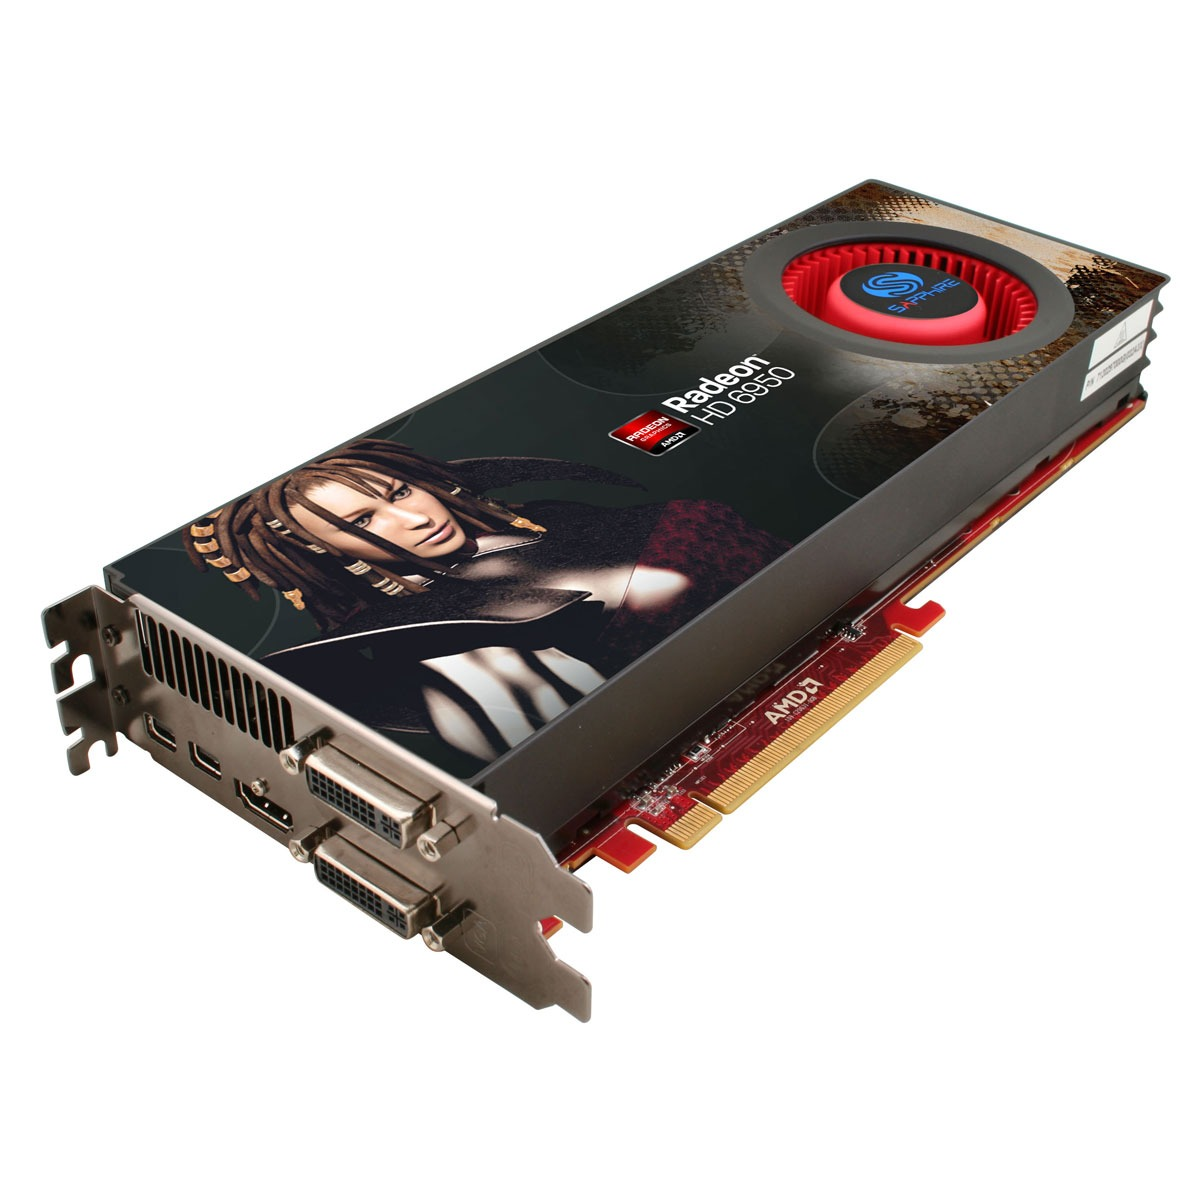 Carte graphique Sapphire Radeon HD 6950 2 GB Sapphire Radeon HD 6950 - 2 Go HDMI/Dual DVI/Dual Mini-DisplayPort - PCI Express (AMD Radeon HD 6950)